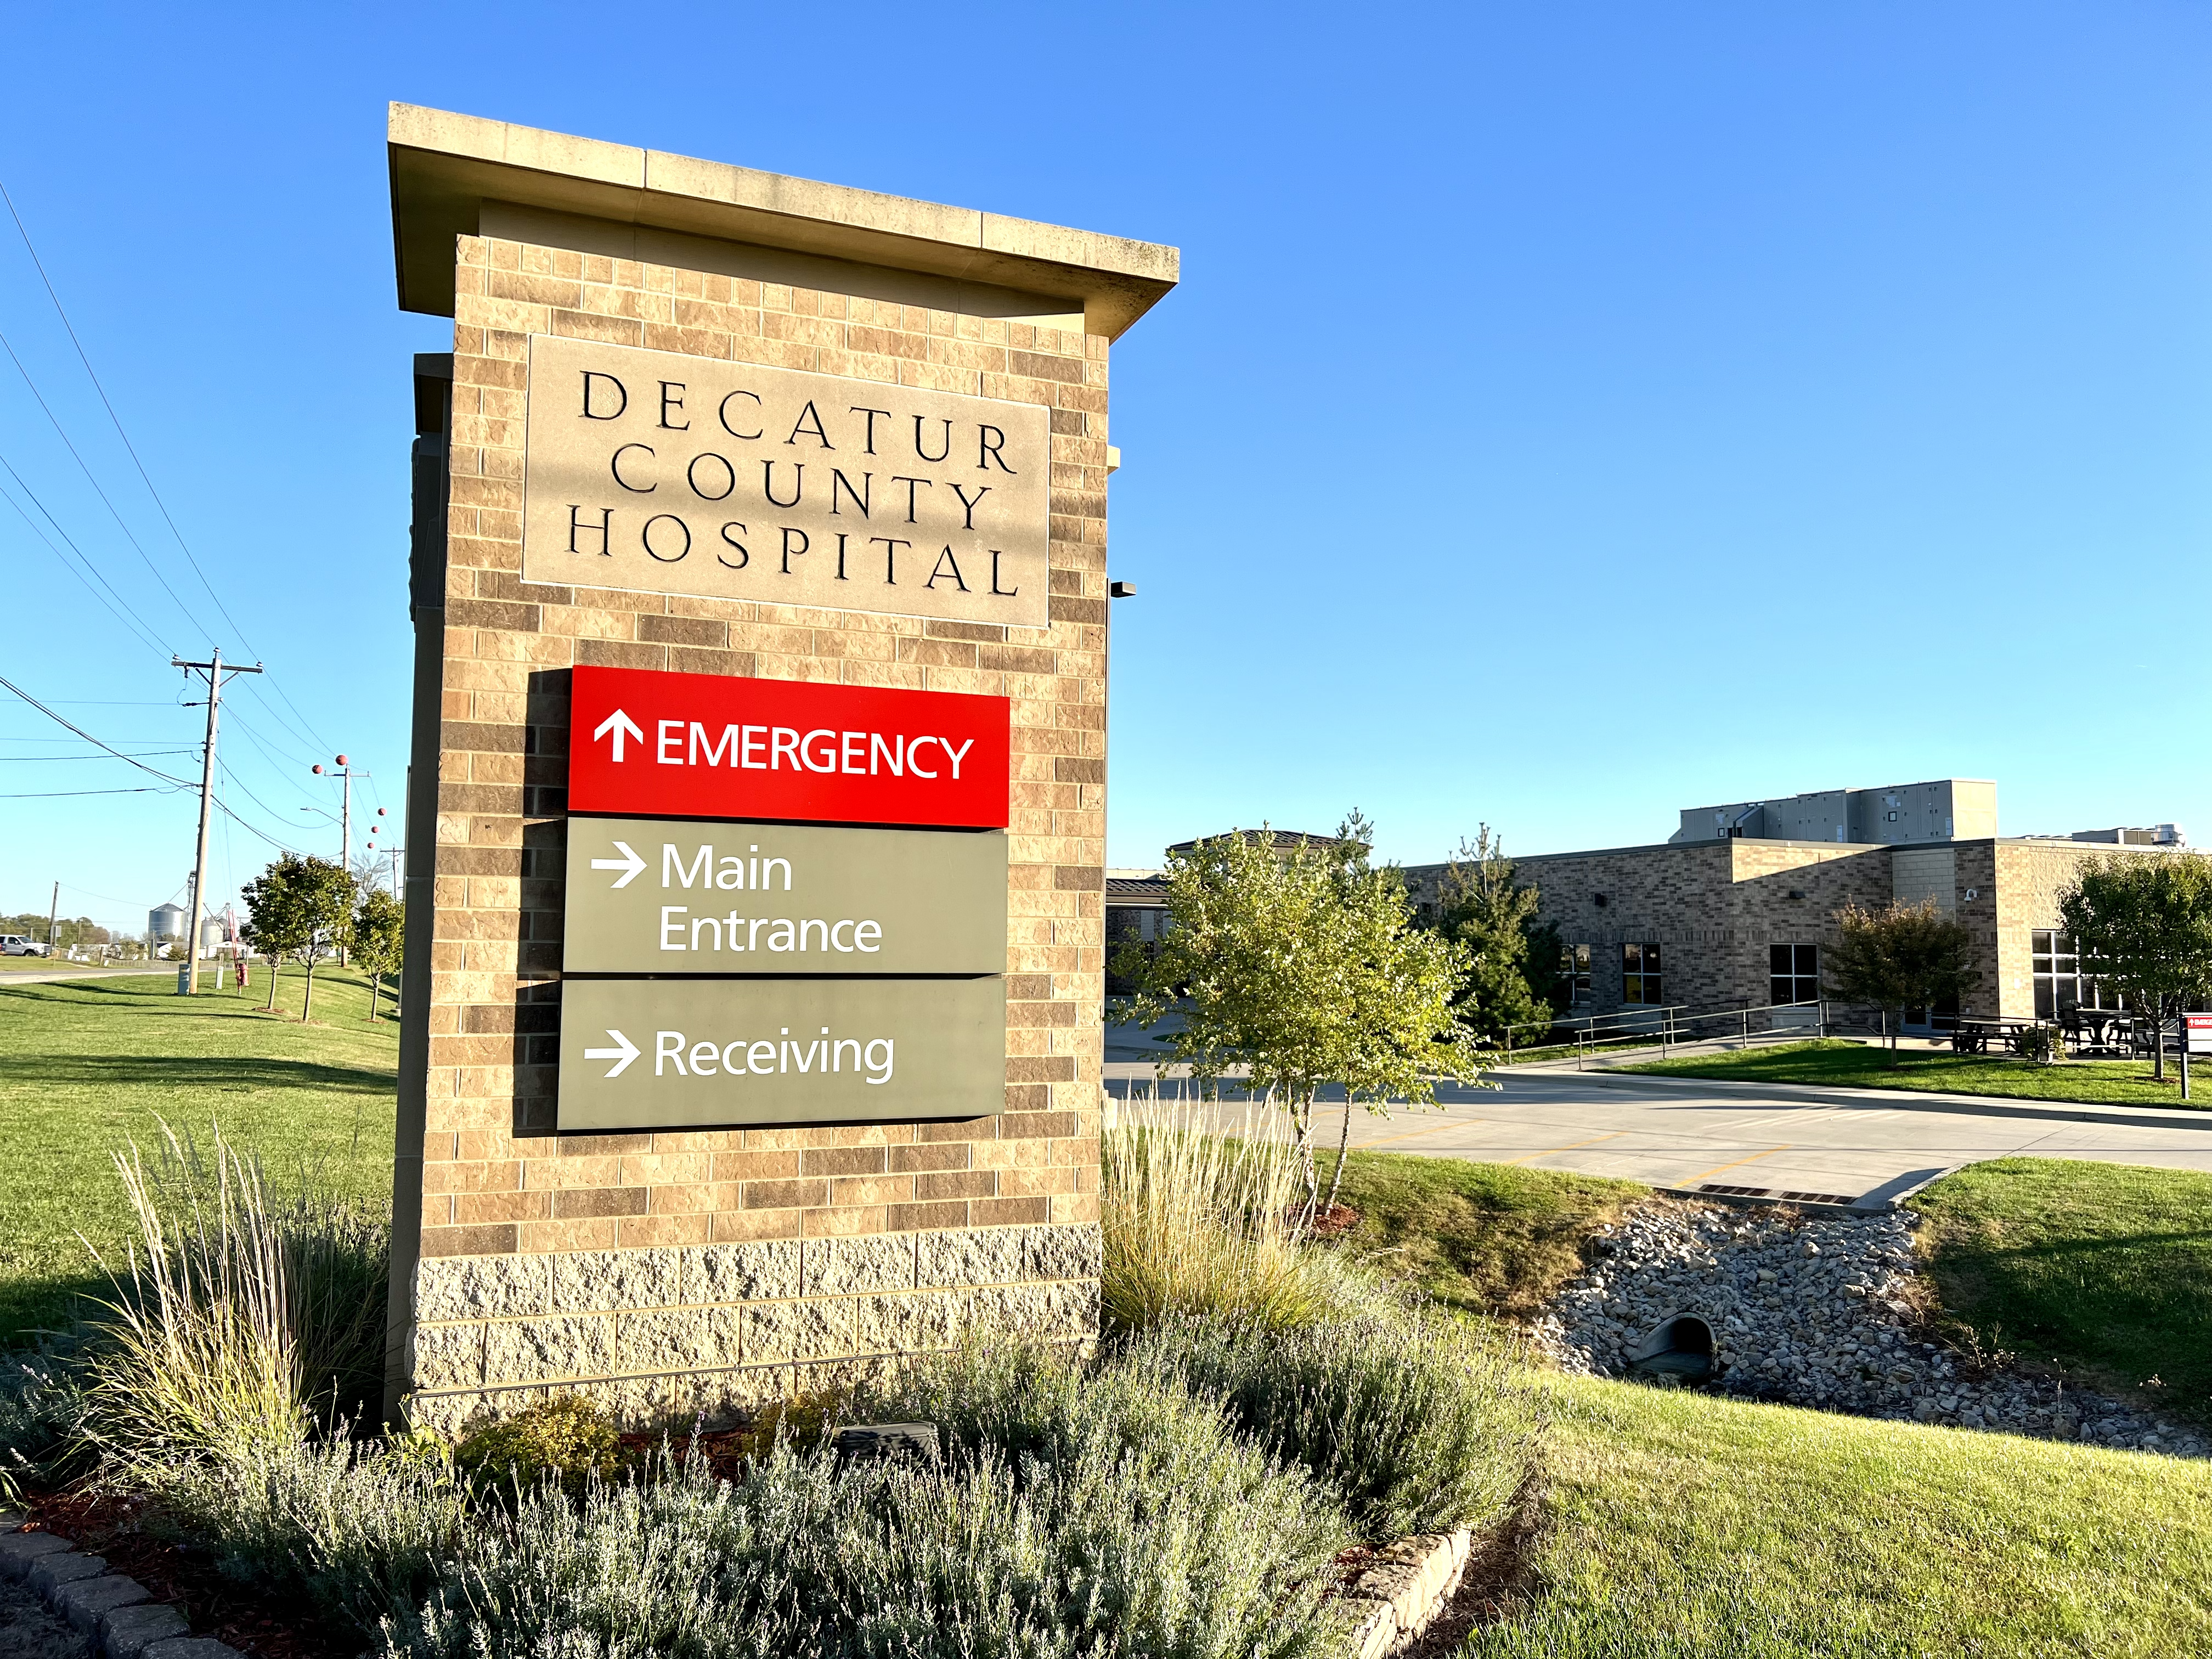 Decatur County Hospital Sign in Front of Hospital